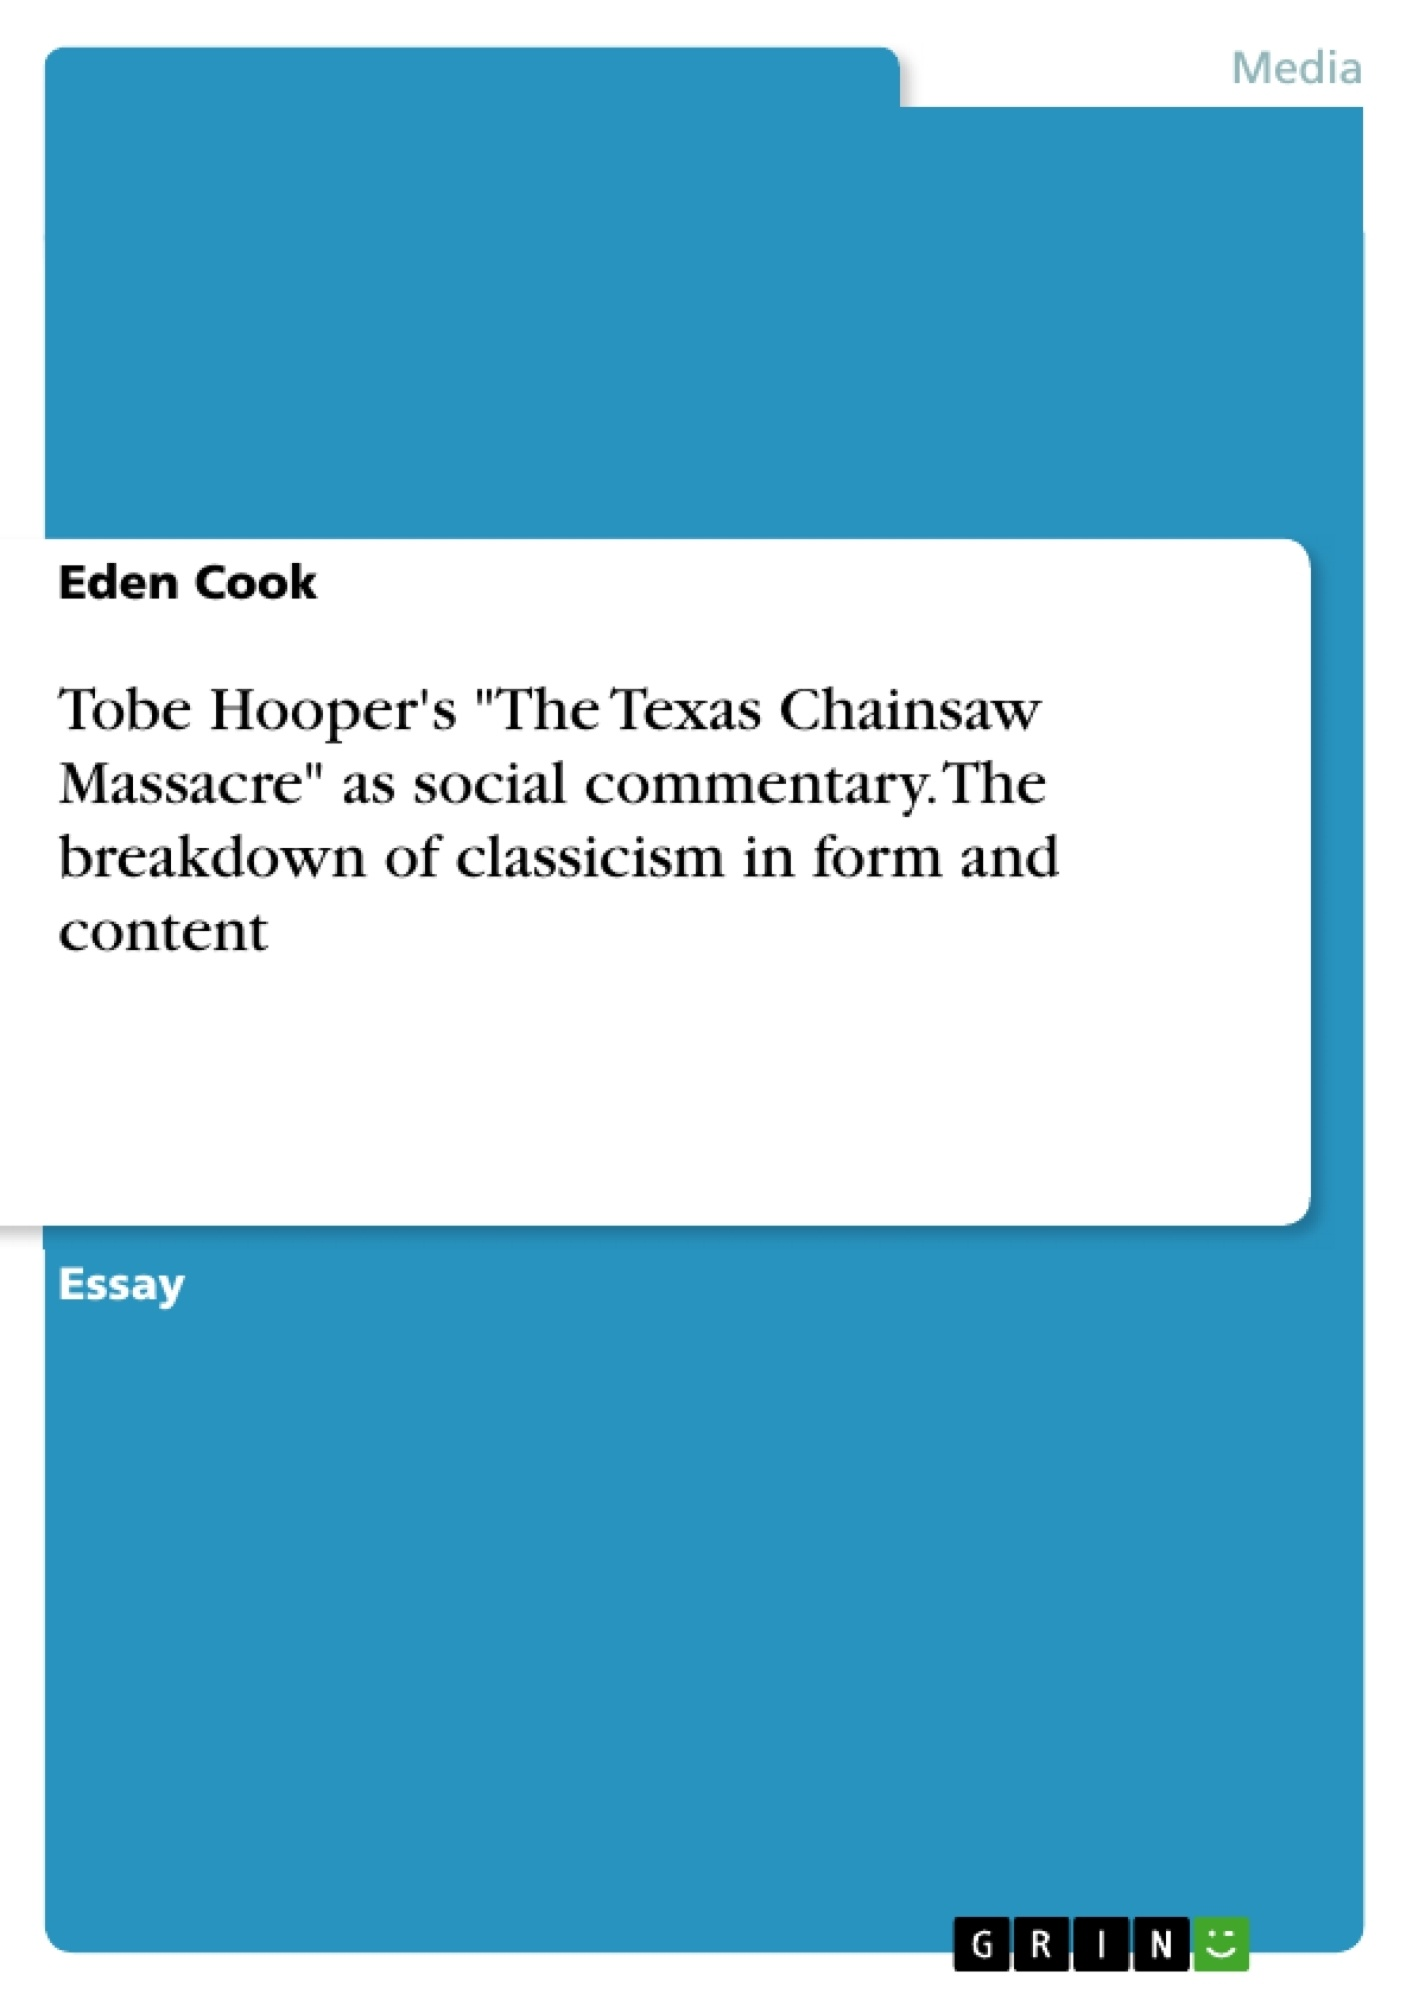 tobe hooper s the texas chainsaw massacre as social commentary  upload your own papers earn money and win an iphone x